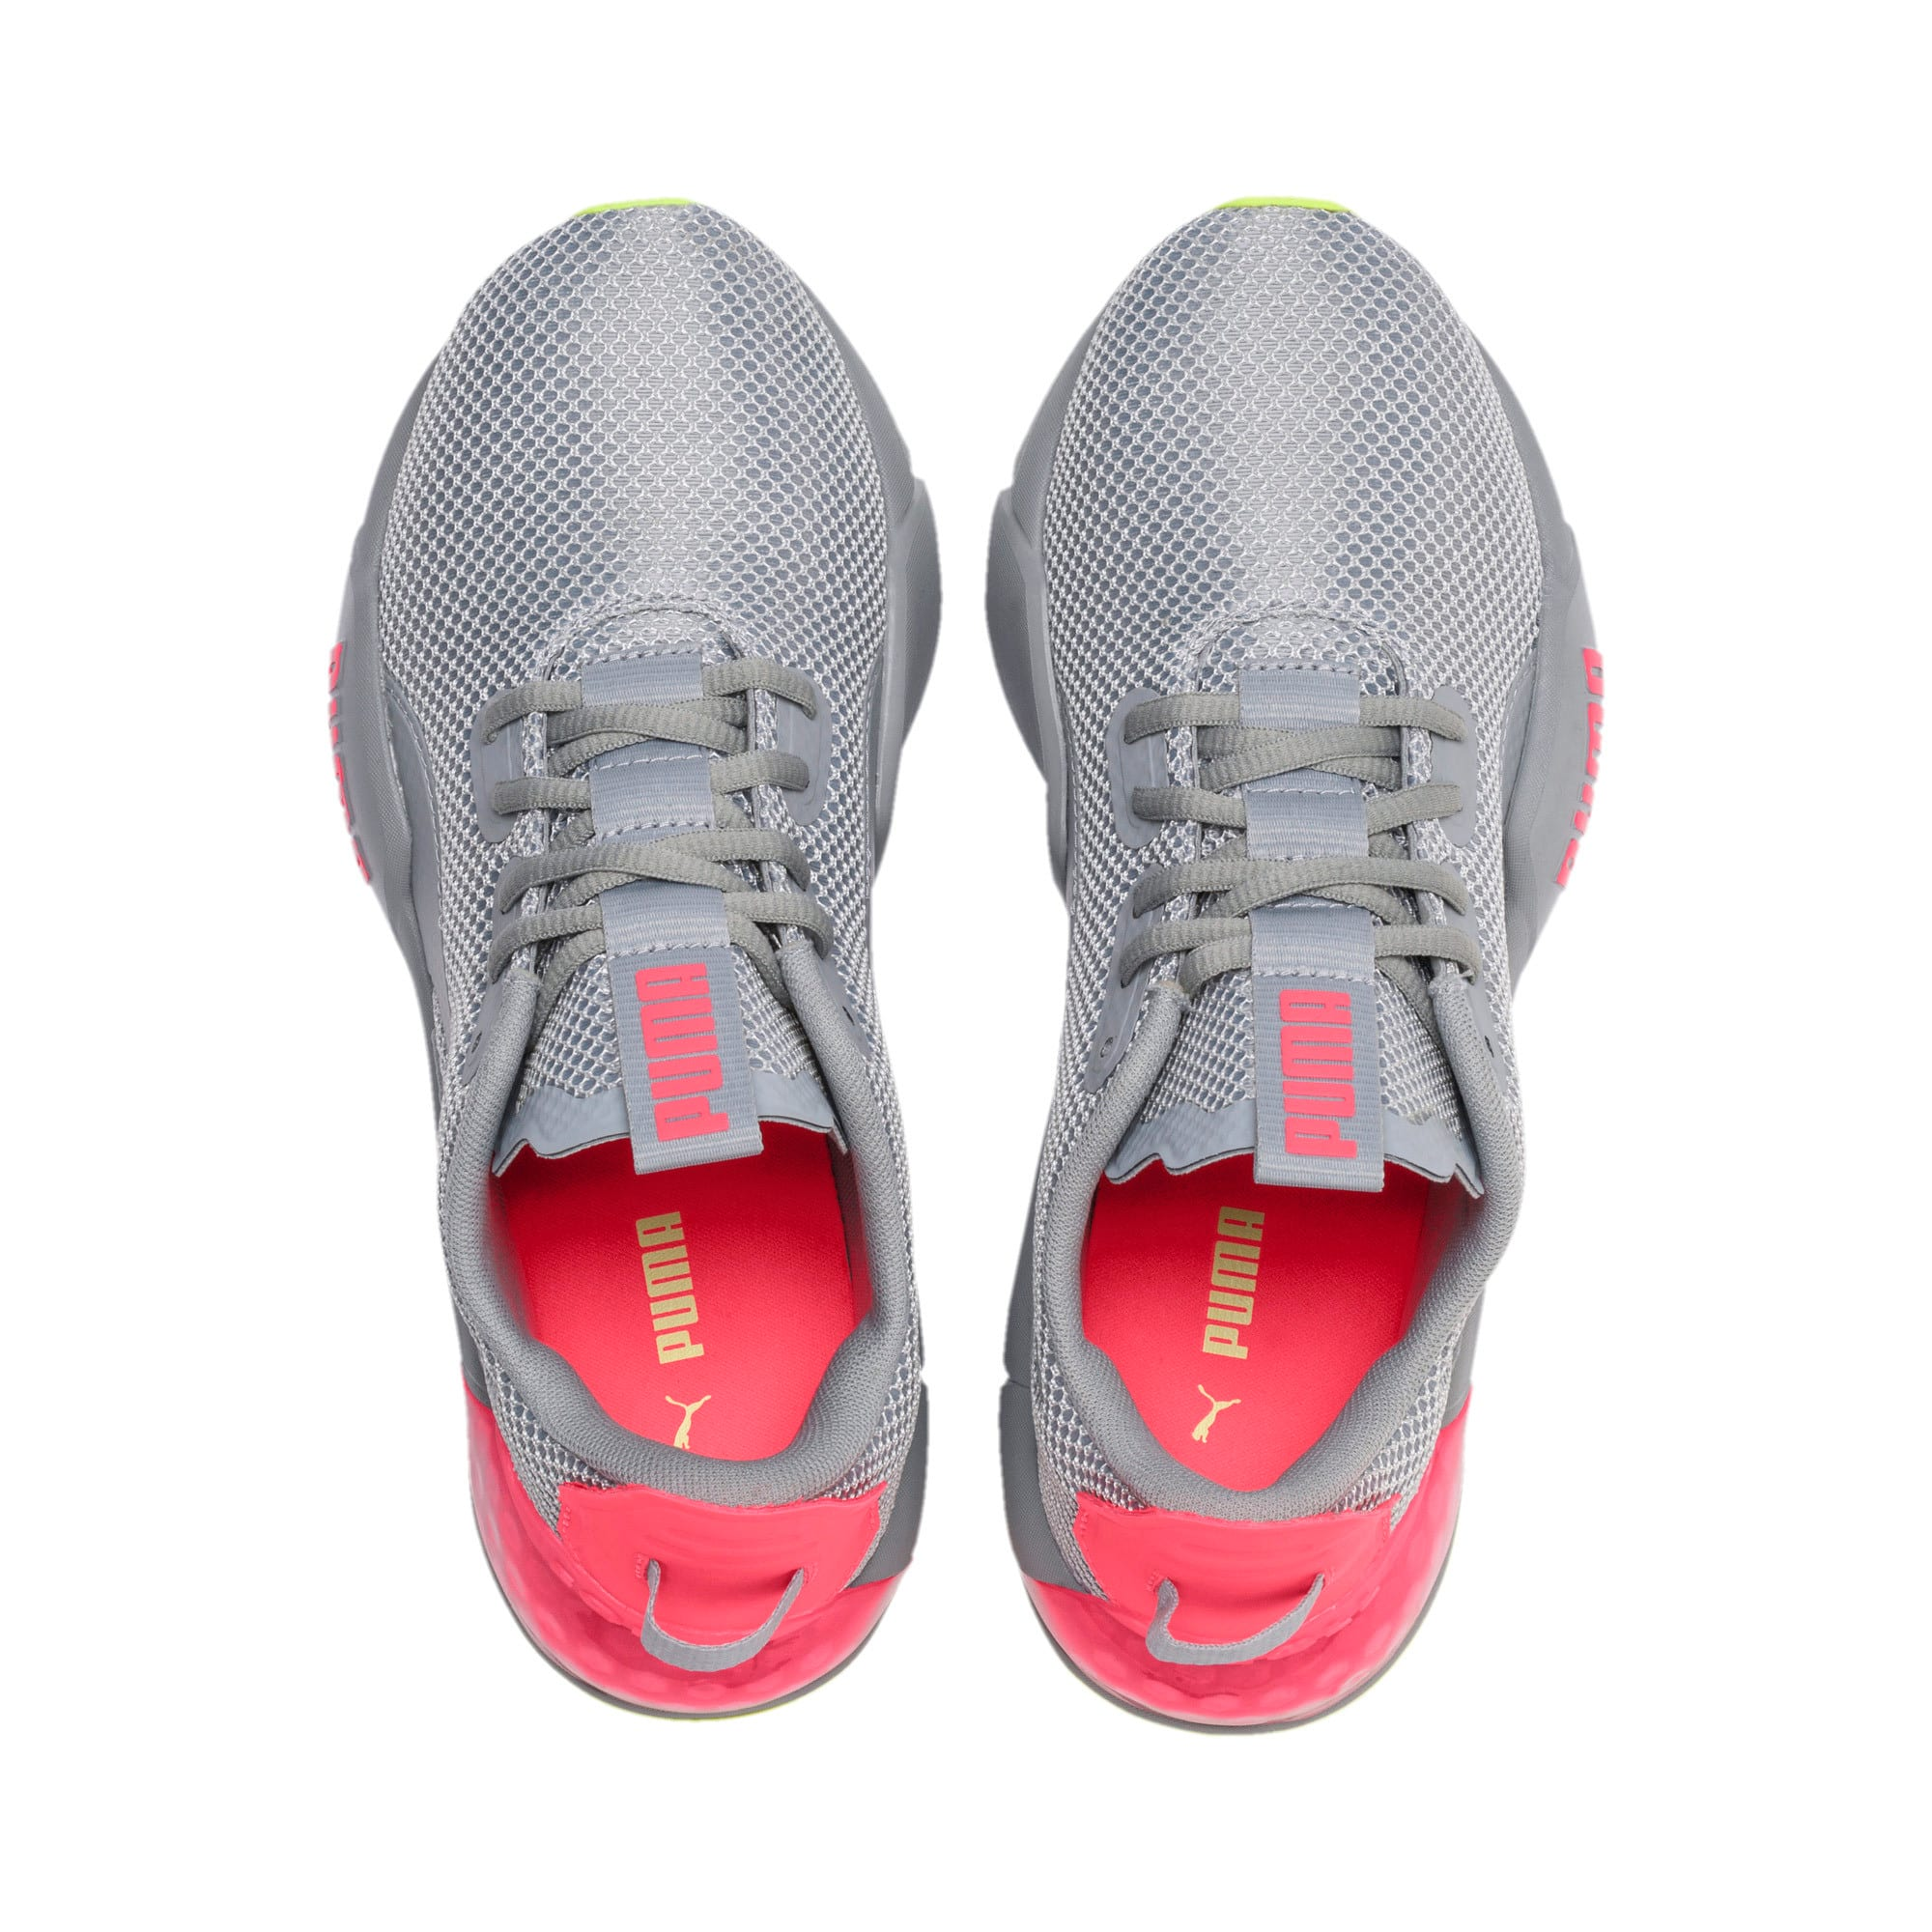 Thumbnail 7 of CELL Phase Women's Training Shoes, Quarry-Pink Alert, medium